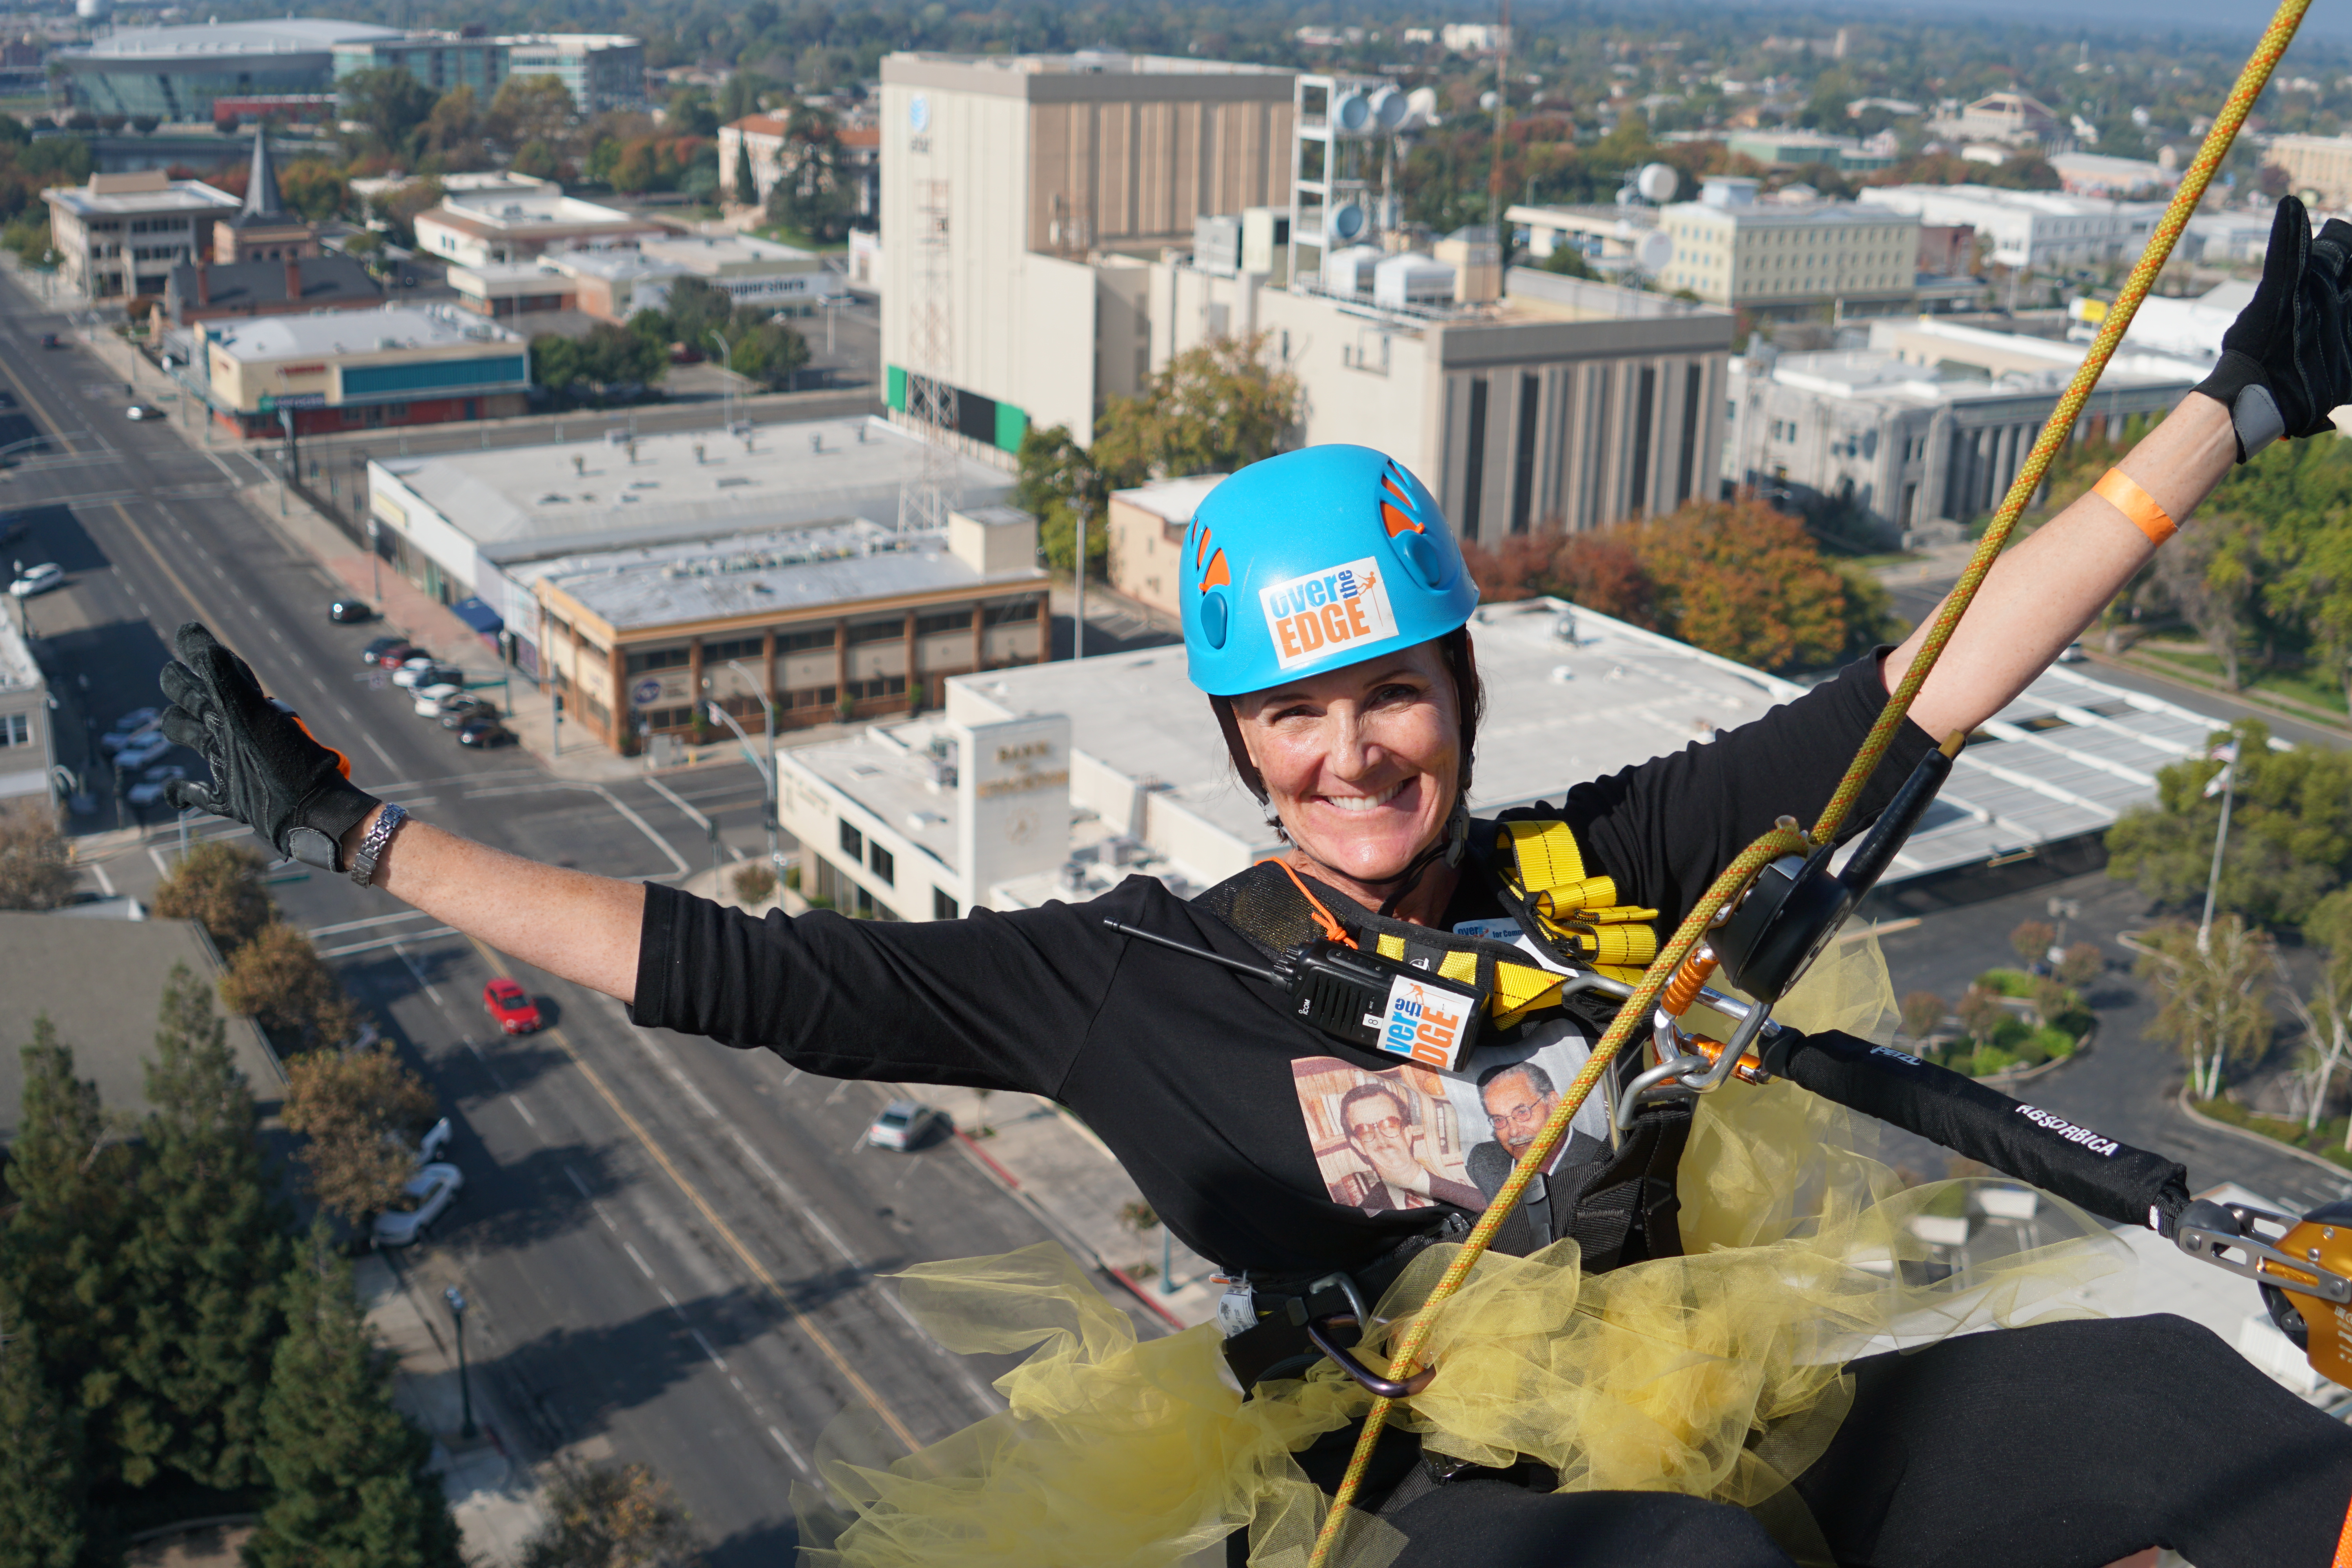 Over The Edge for a Kindred Community